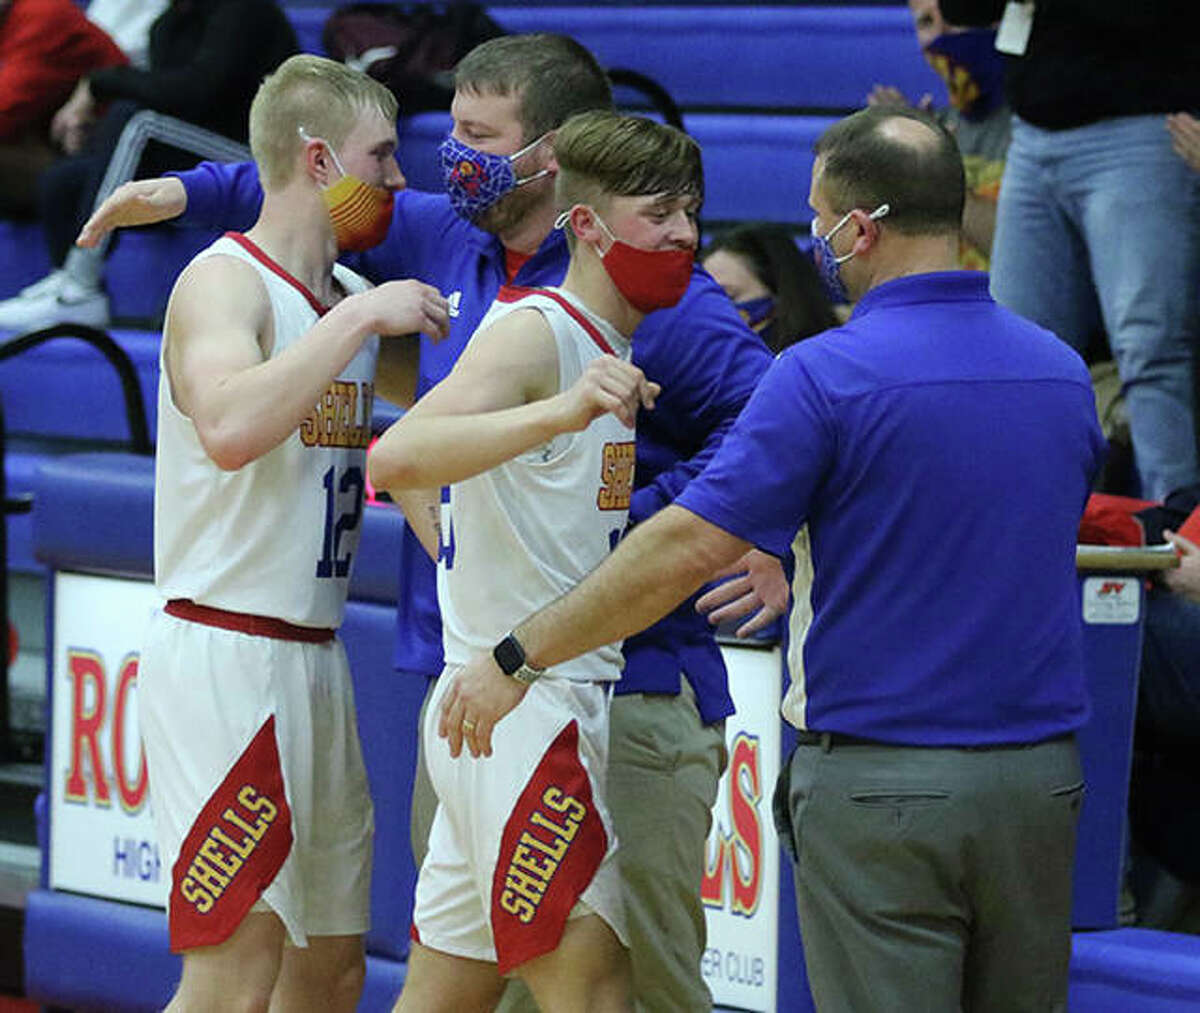 Roxana seniors Cade Slayden (left) and Austin Martin are greeted at the bench by assistant Jerry Wheaton and head coach Mark Briggs (right) after leaving the court for the final time Friday night at Larry Milazzo Gym in Roxana.